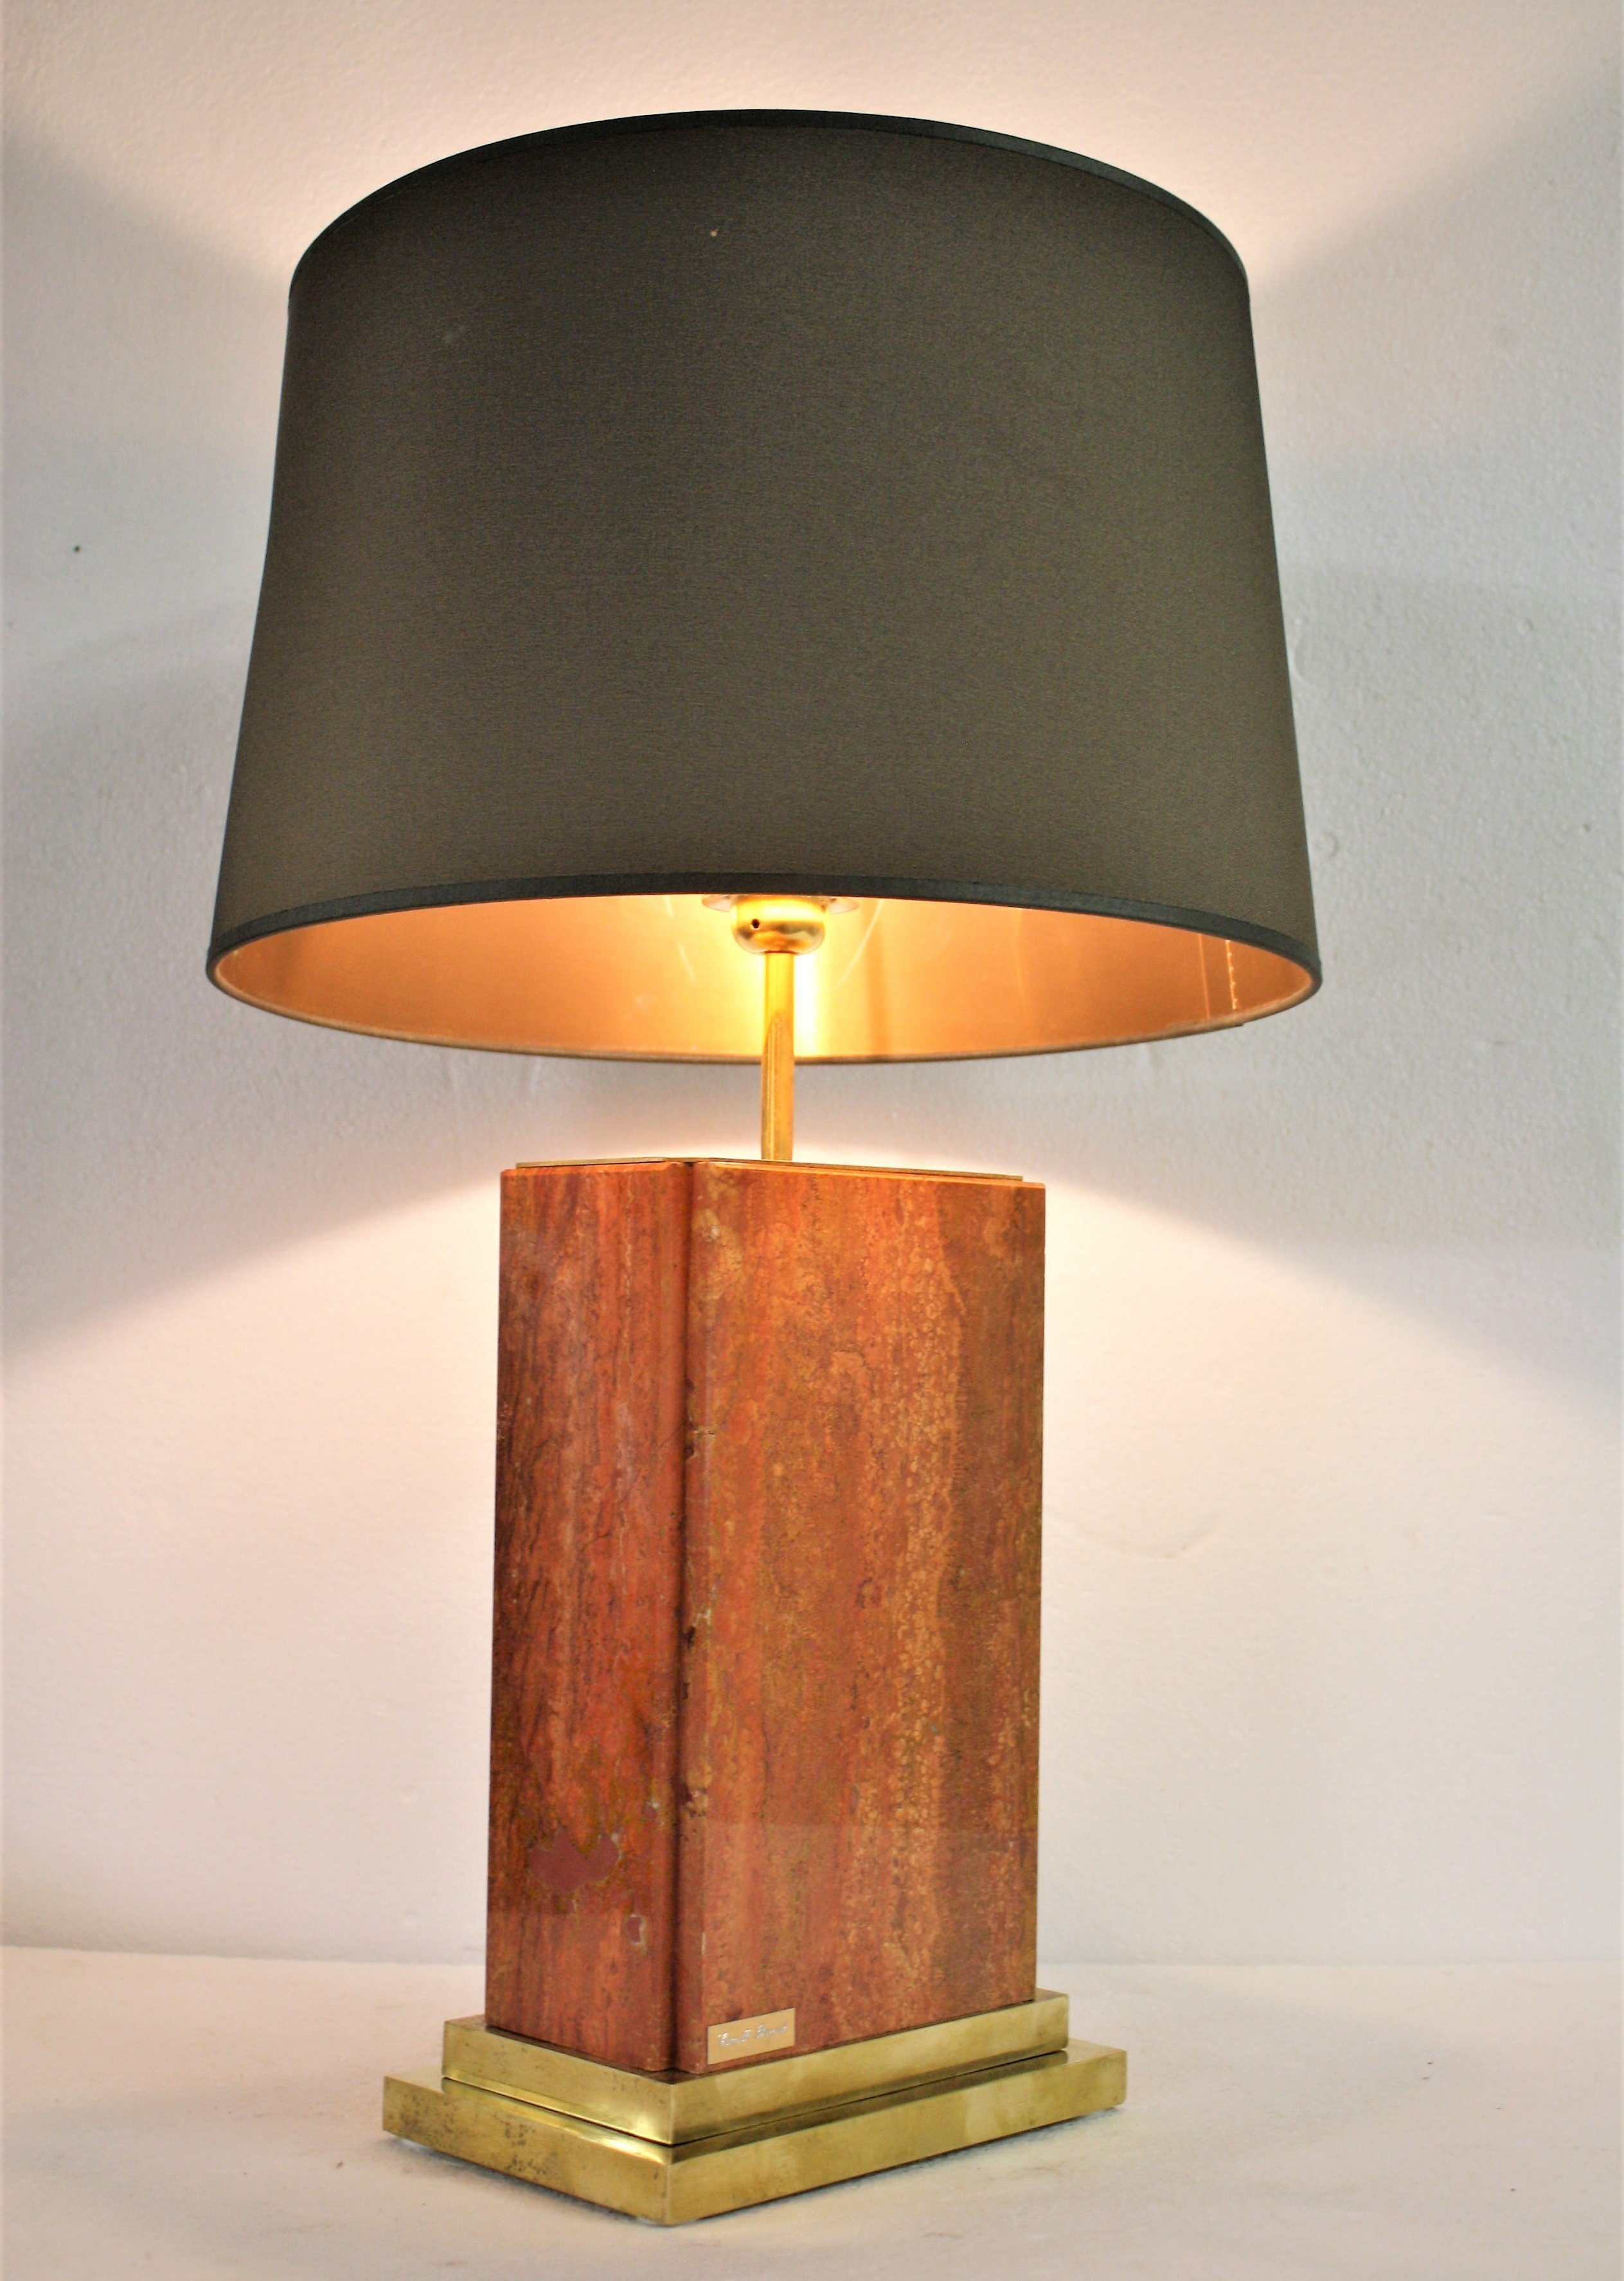 Vintage Marble Table Lamp By Camille Breesch 1970s 85433